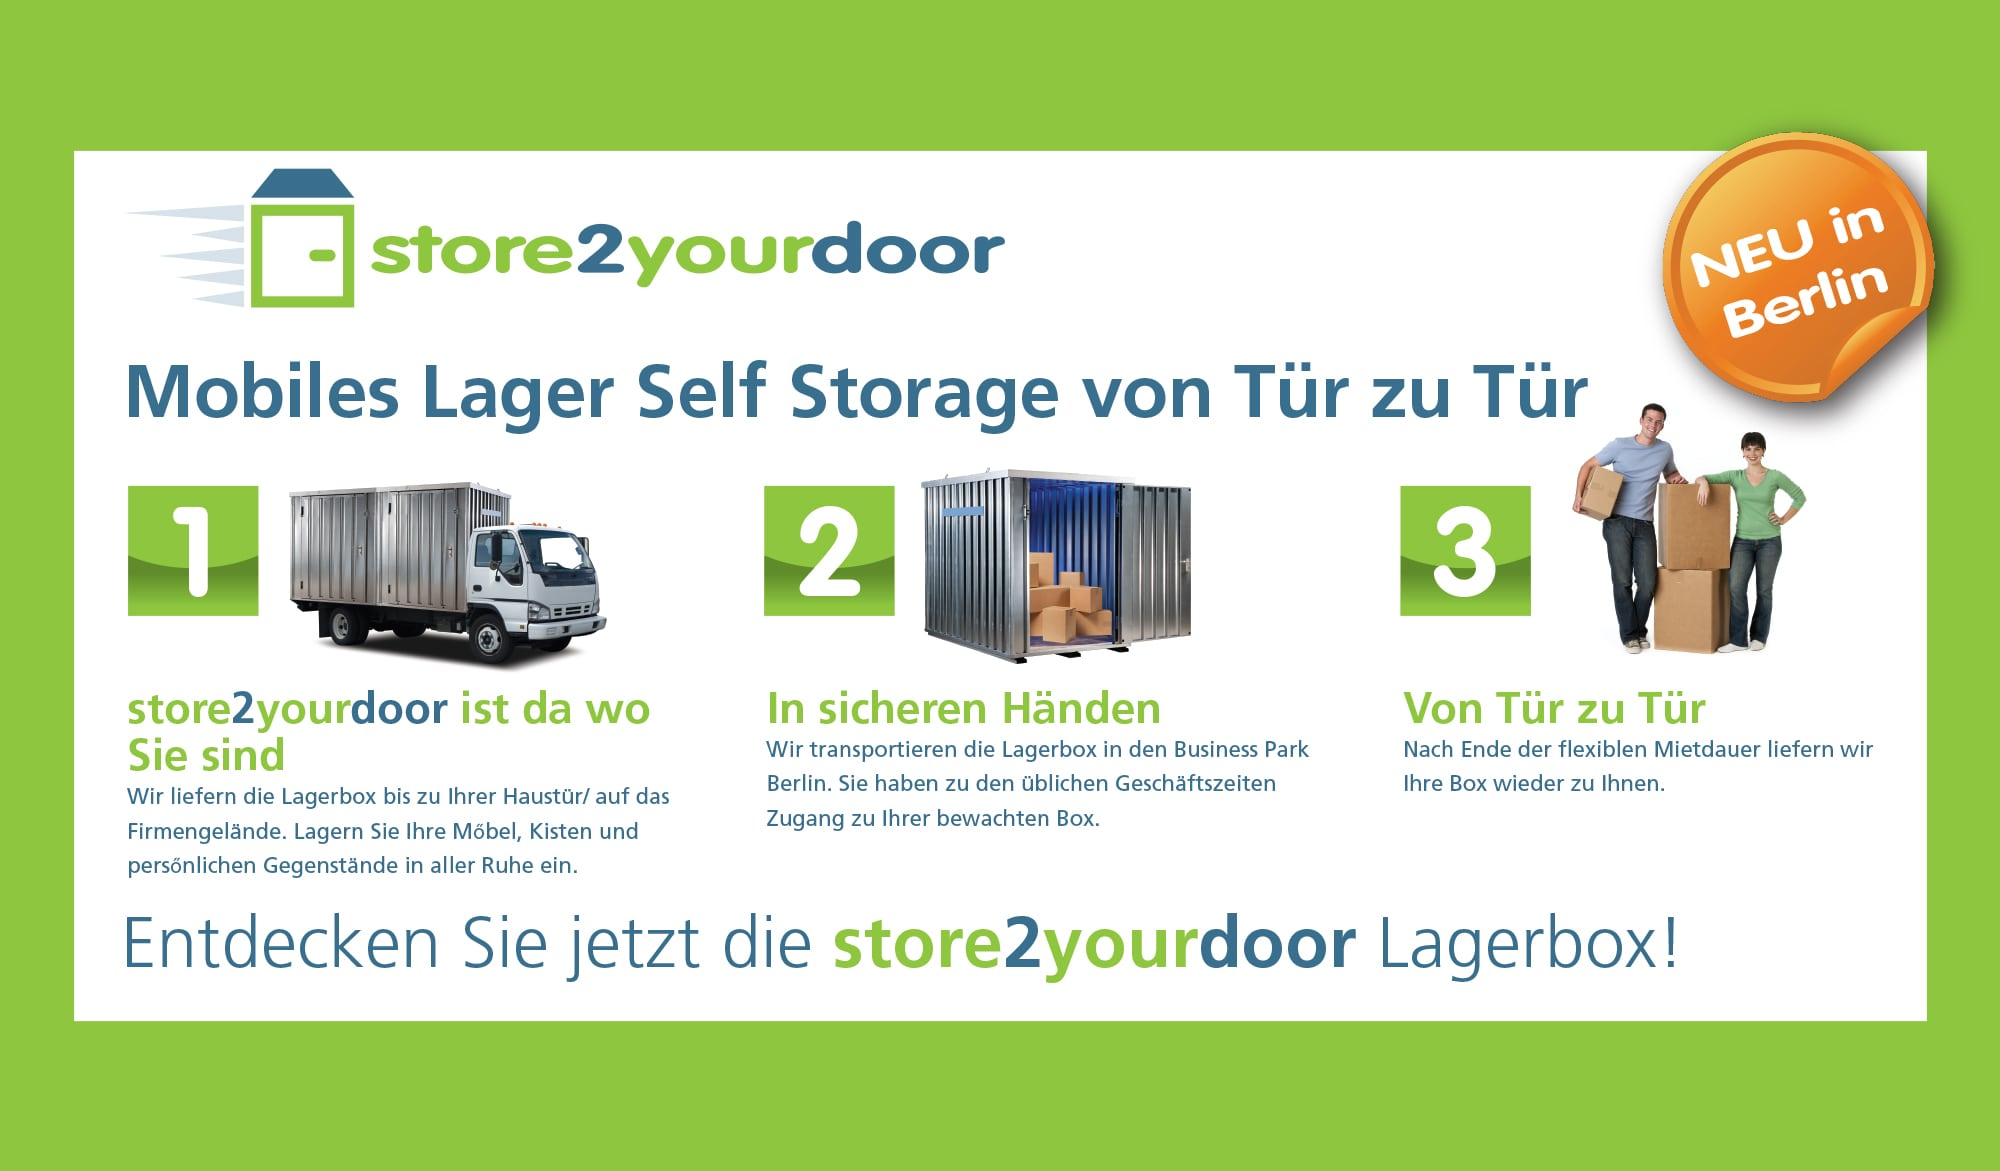 Store2yourdoor flyer